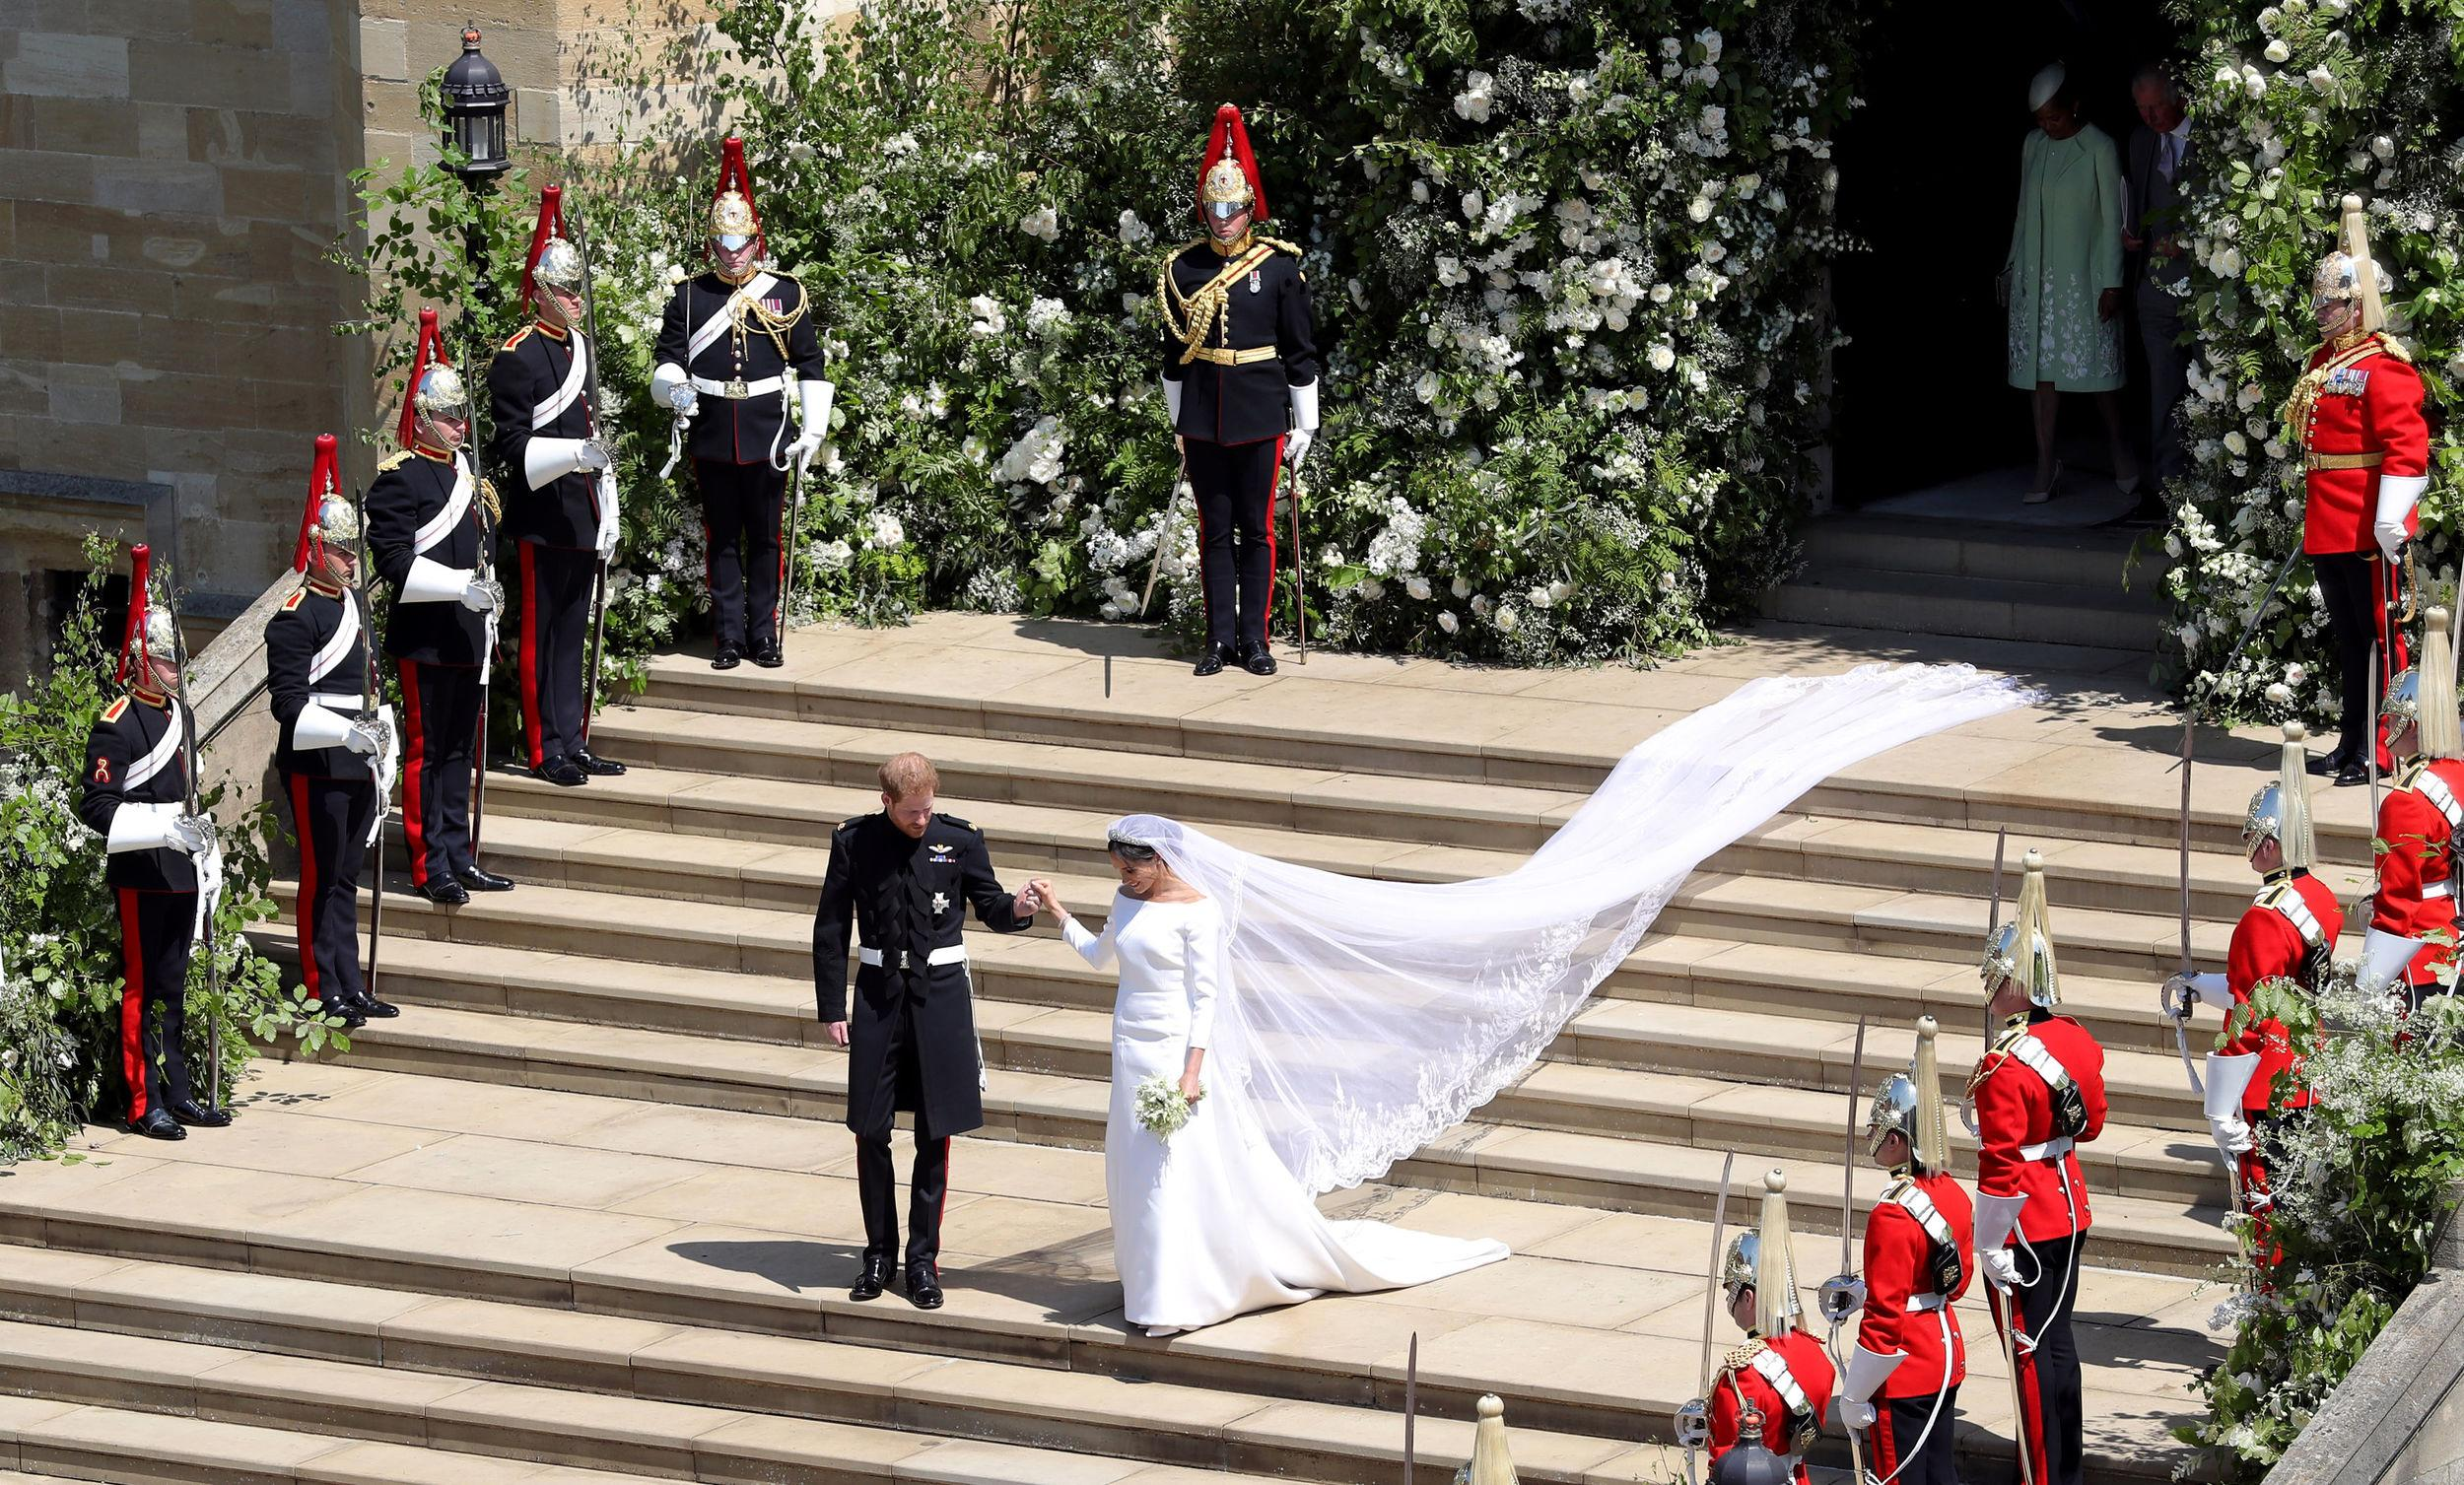 <p>Prince Harry, Duke of Sussex and The Duchess of Sussex leave St George's Chapel, Windsor Castle after their wedding ceremony on May 19, 2018 in Windsor, England.</p>  <p>(Photo by Andrew Matthews - WPA Pool/Getty Images)</p>